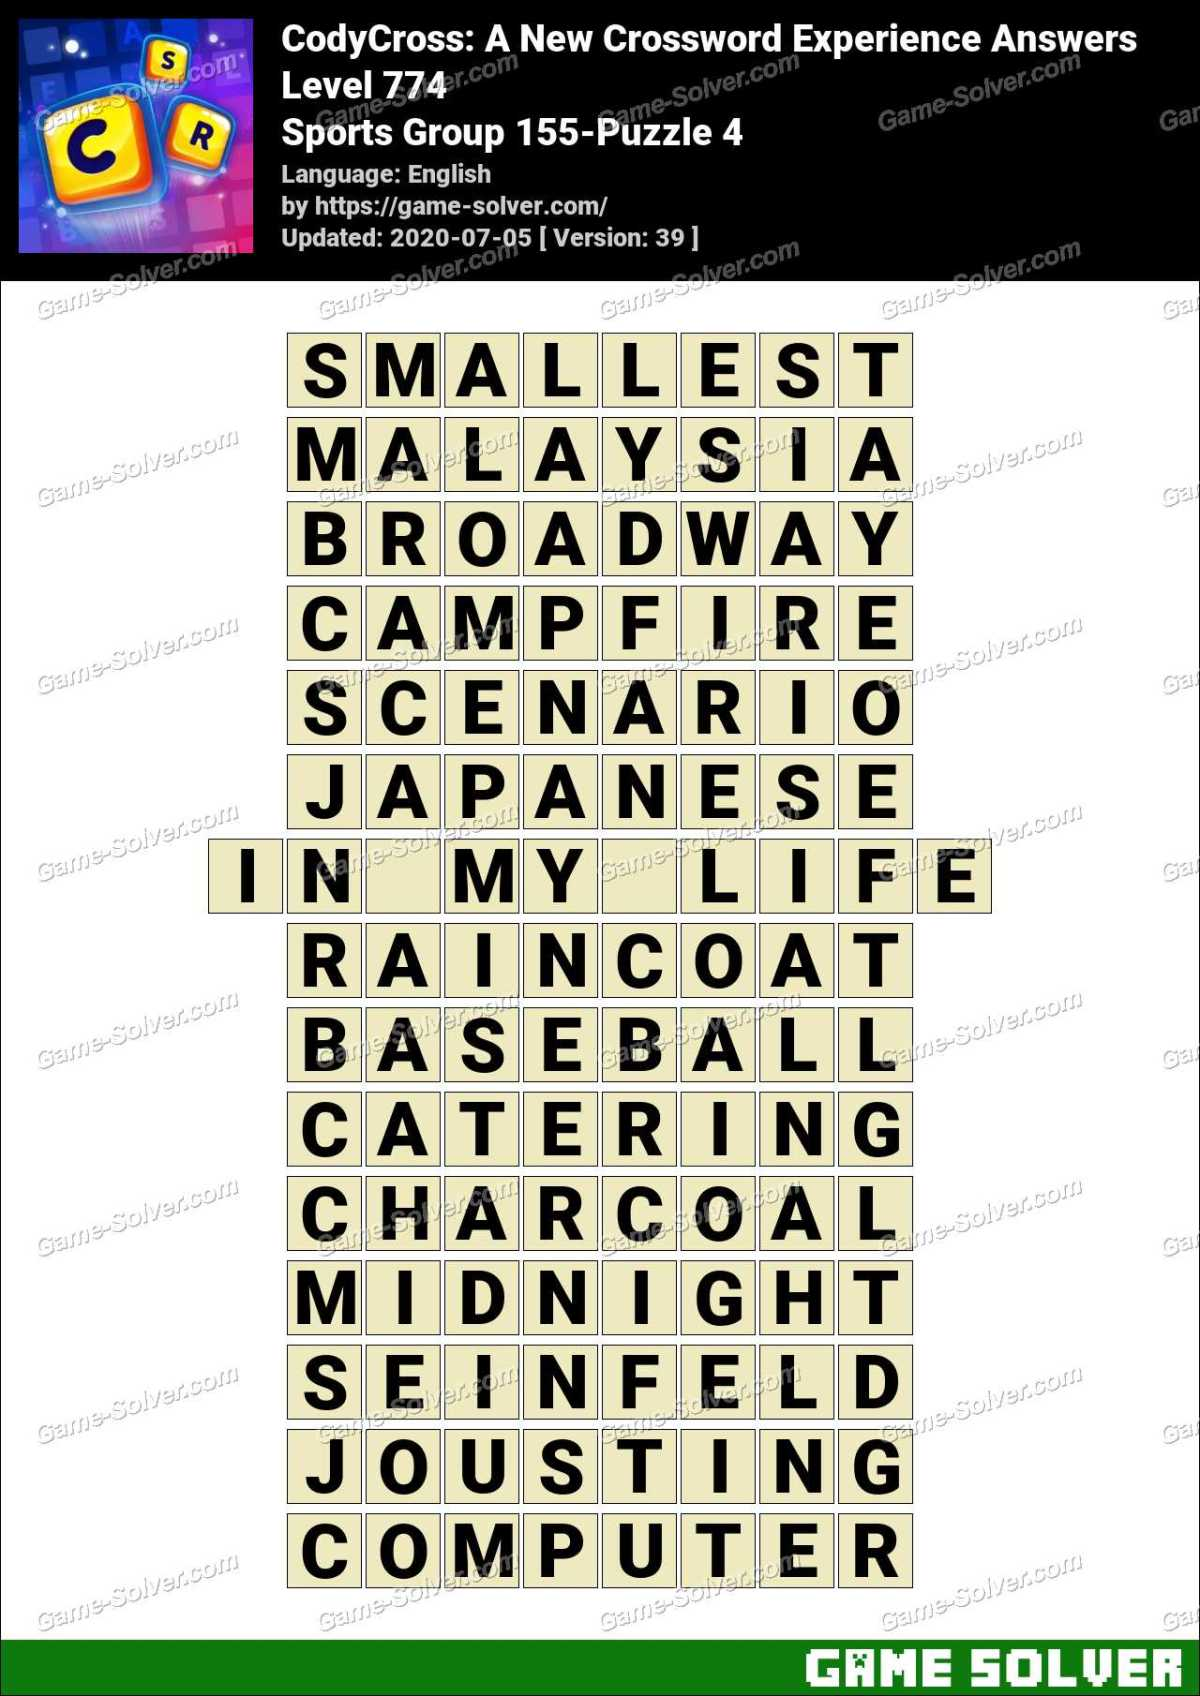 CodyCross Sports Group 155-Puzzle 4 Answers